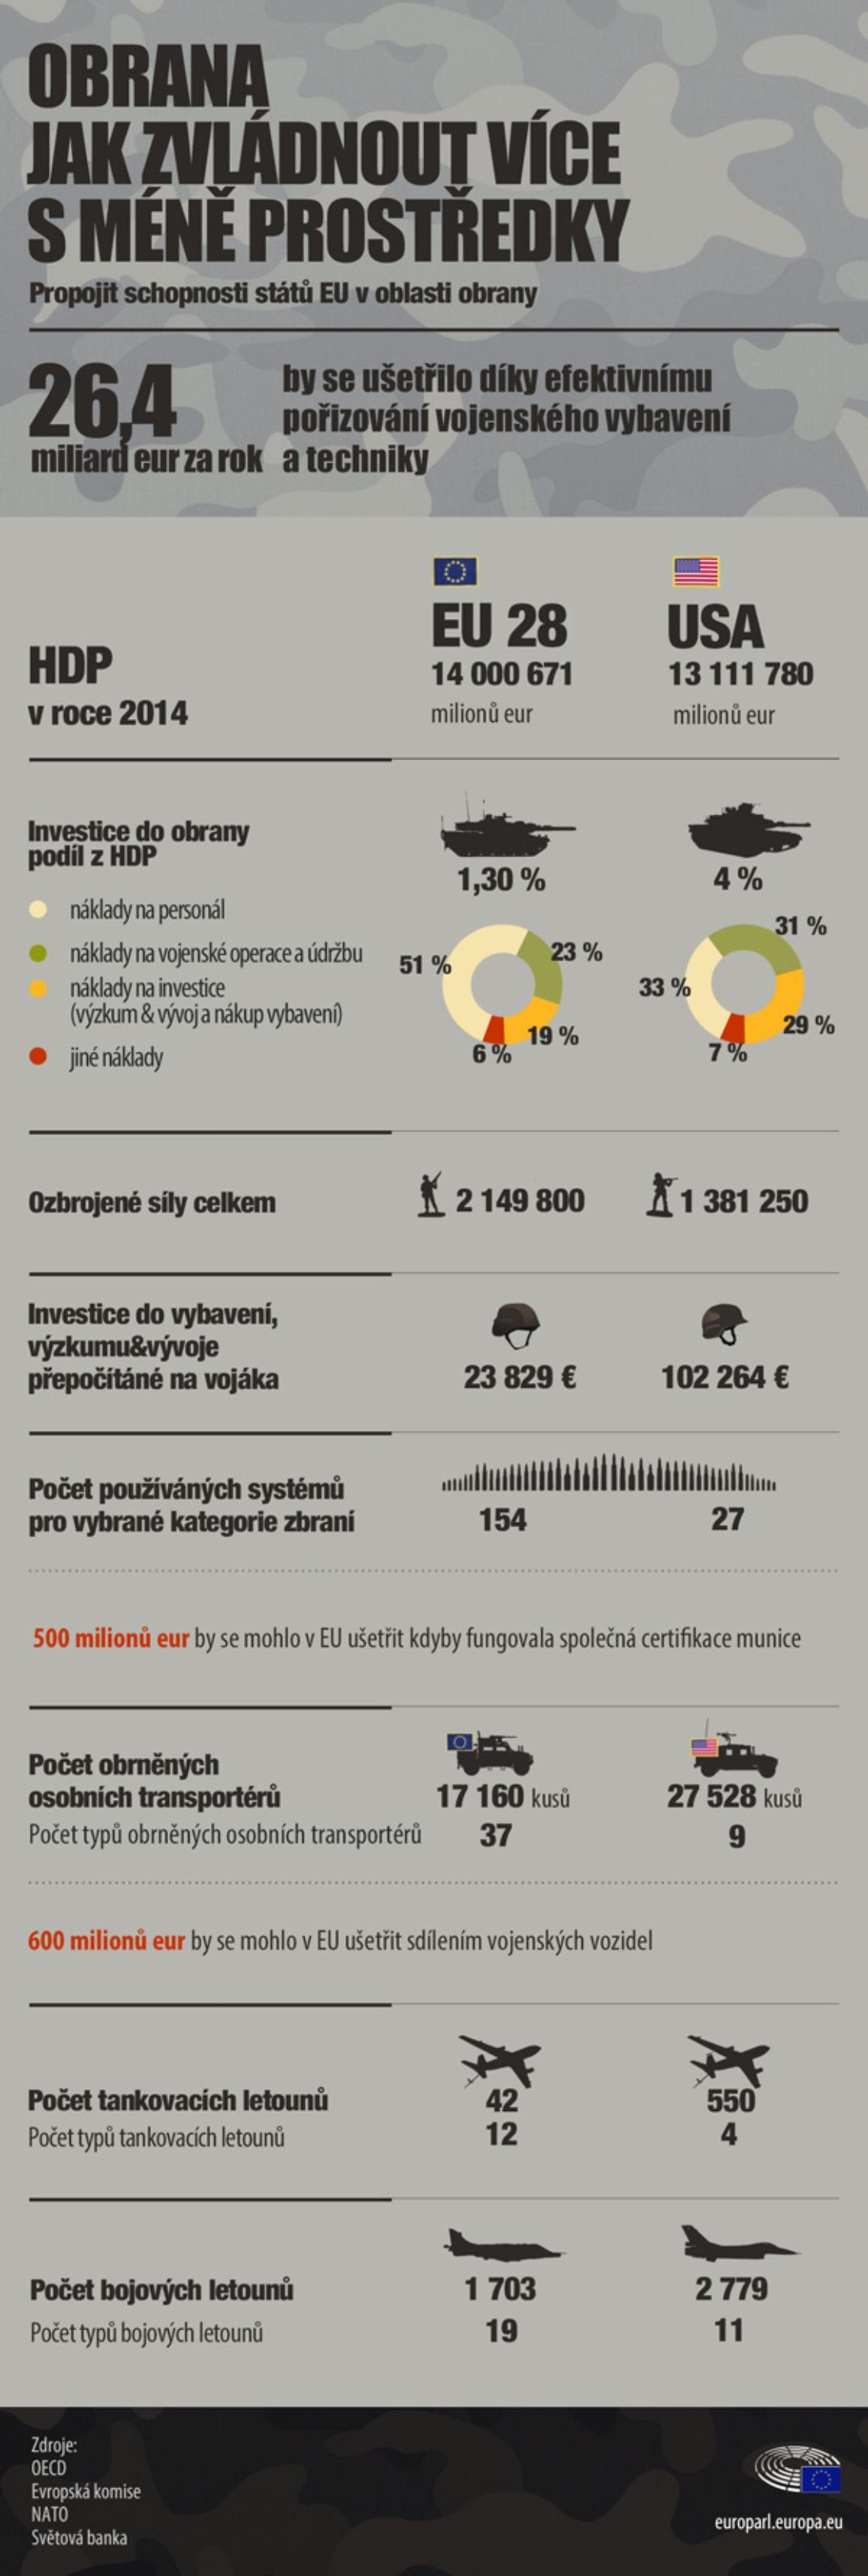 infographic illustration on benefits of closer cooperationon defence at EU level